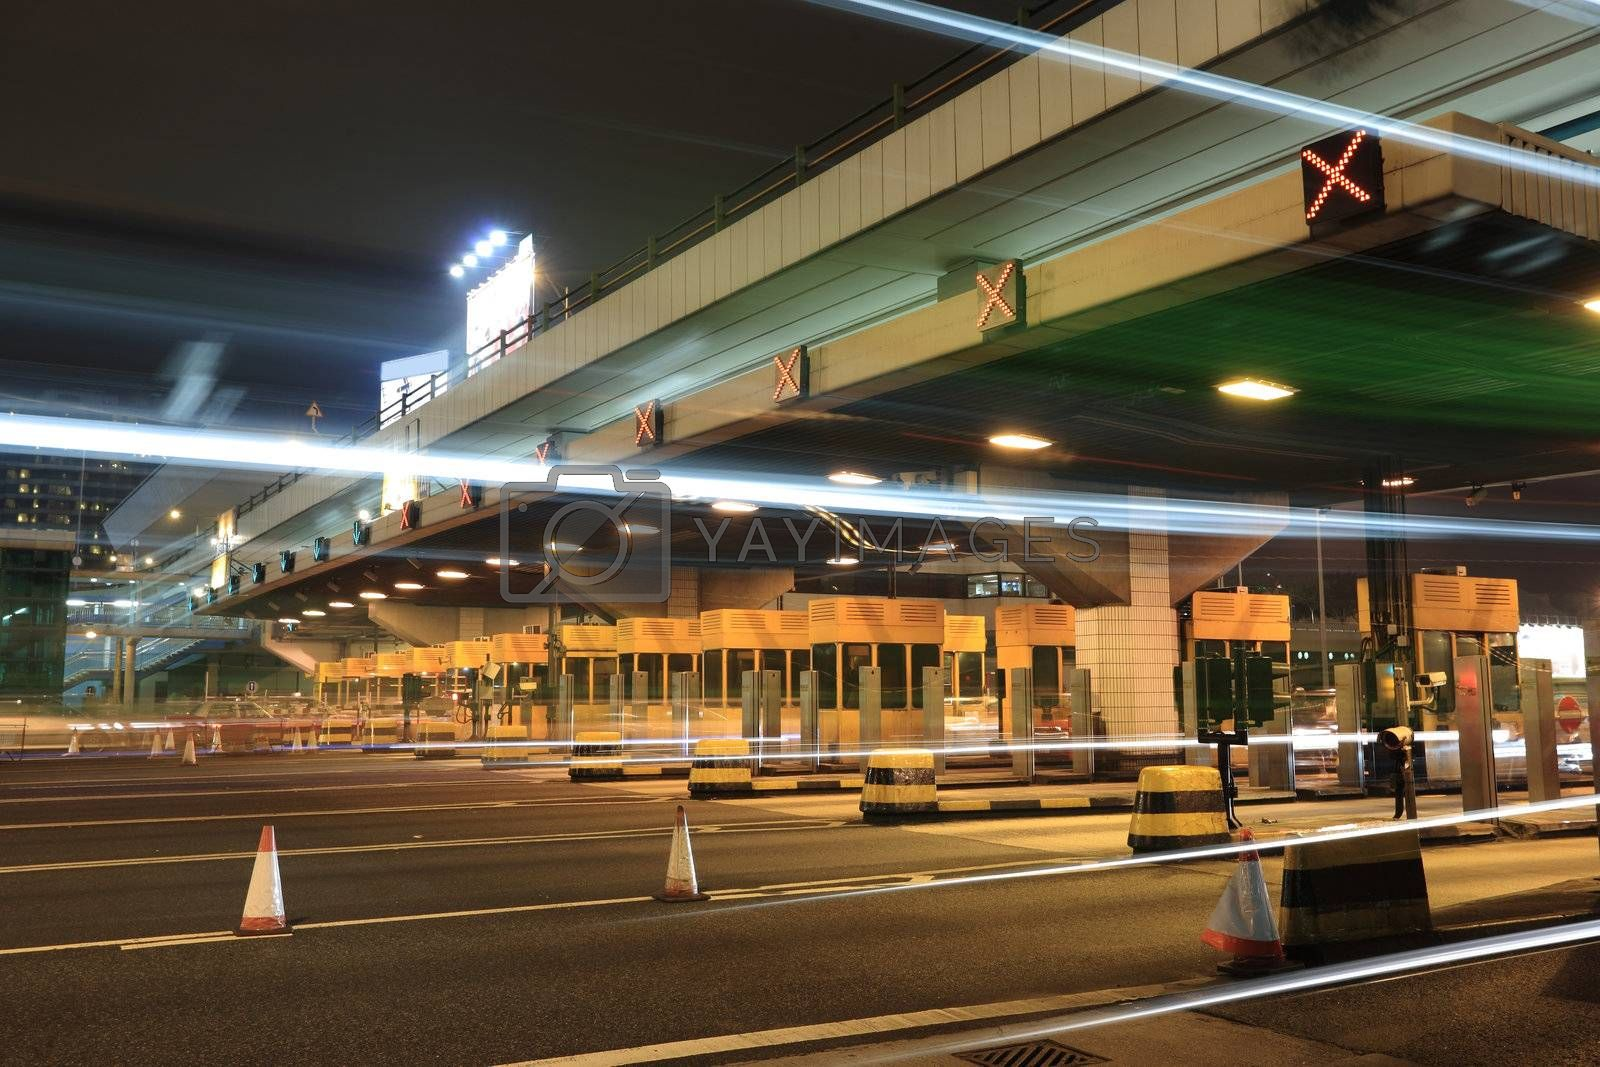 toll booths with car light in Hong Kong by leungchopan